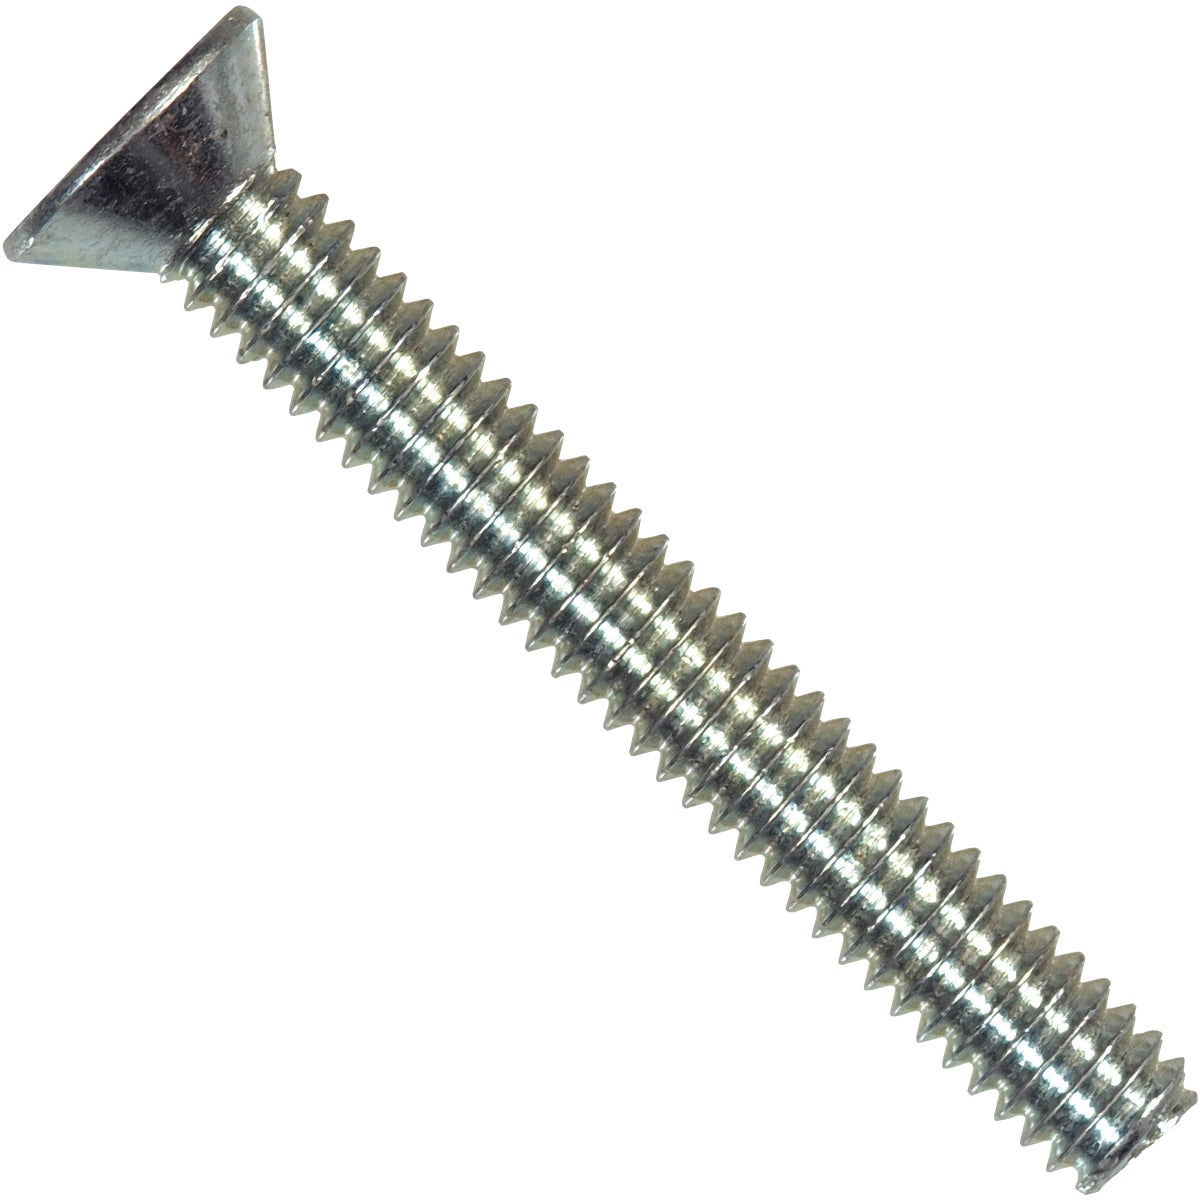 8-32X1/2 PH F MACH SCREW - 101053 by Hillman Fastener